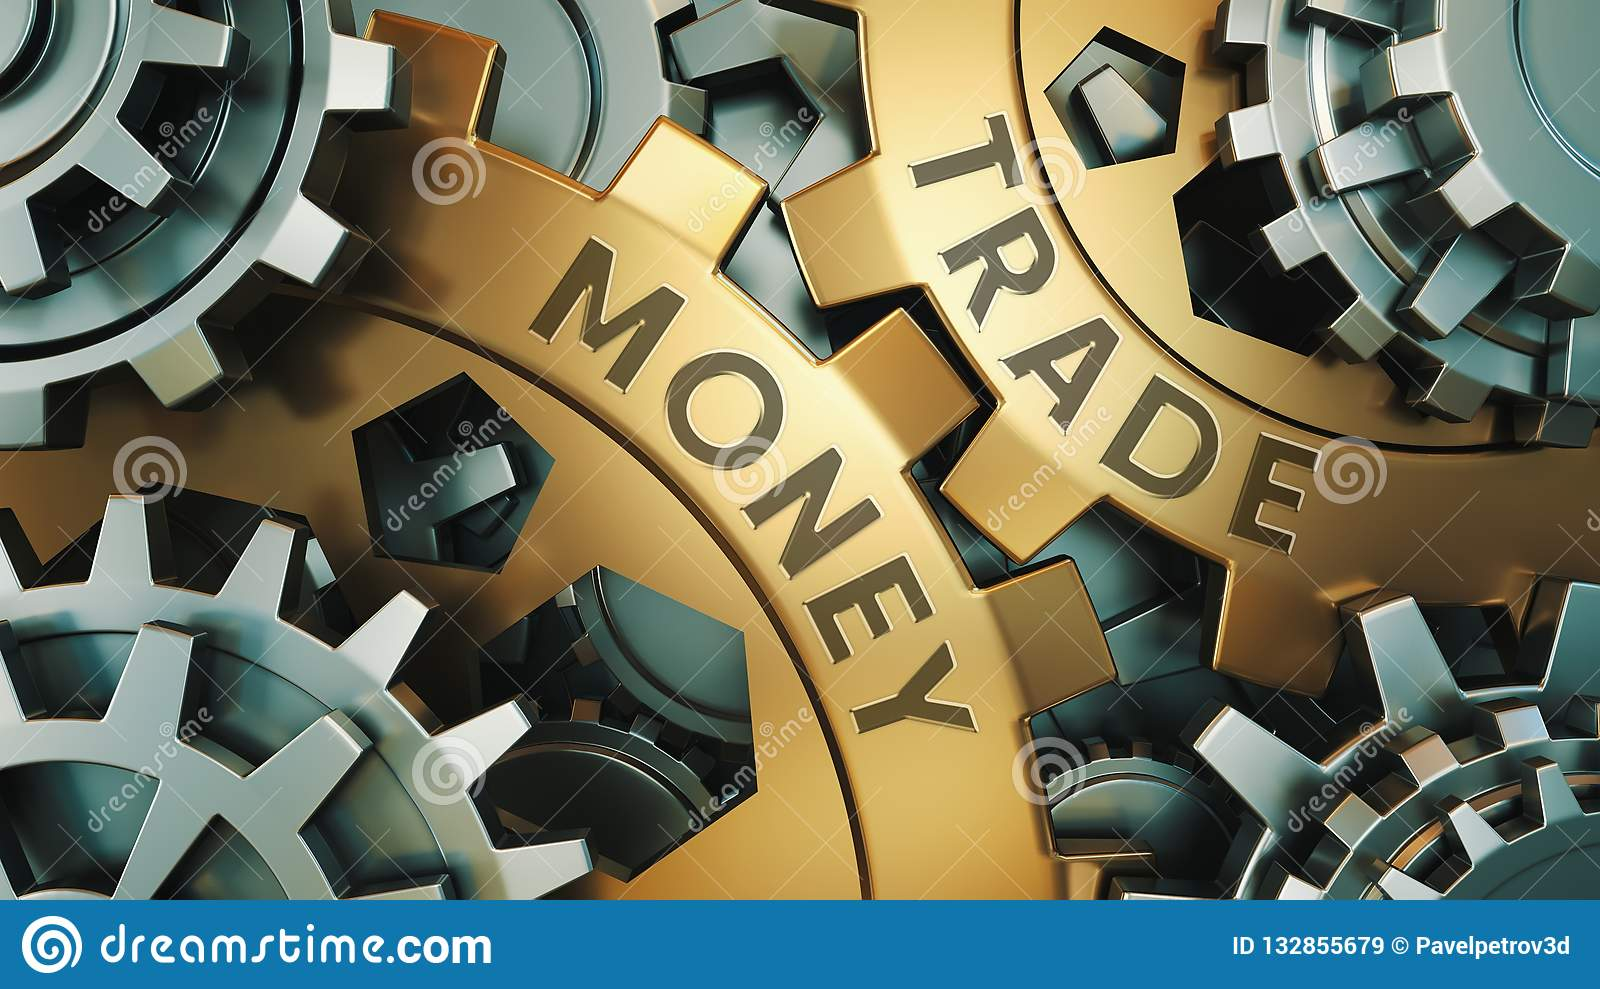 Business, Technology. Money trade concept. Gold and silver gear wheel background illustration. 3d illustration.